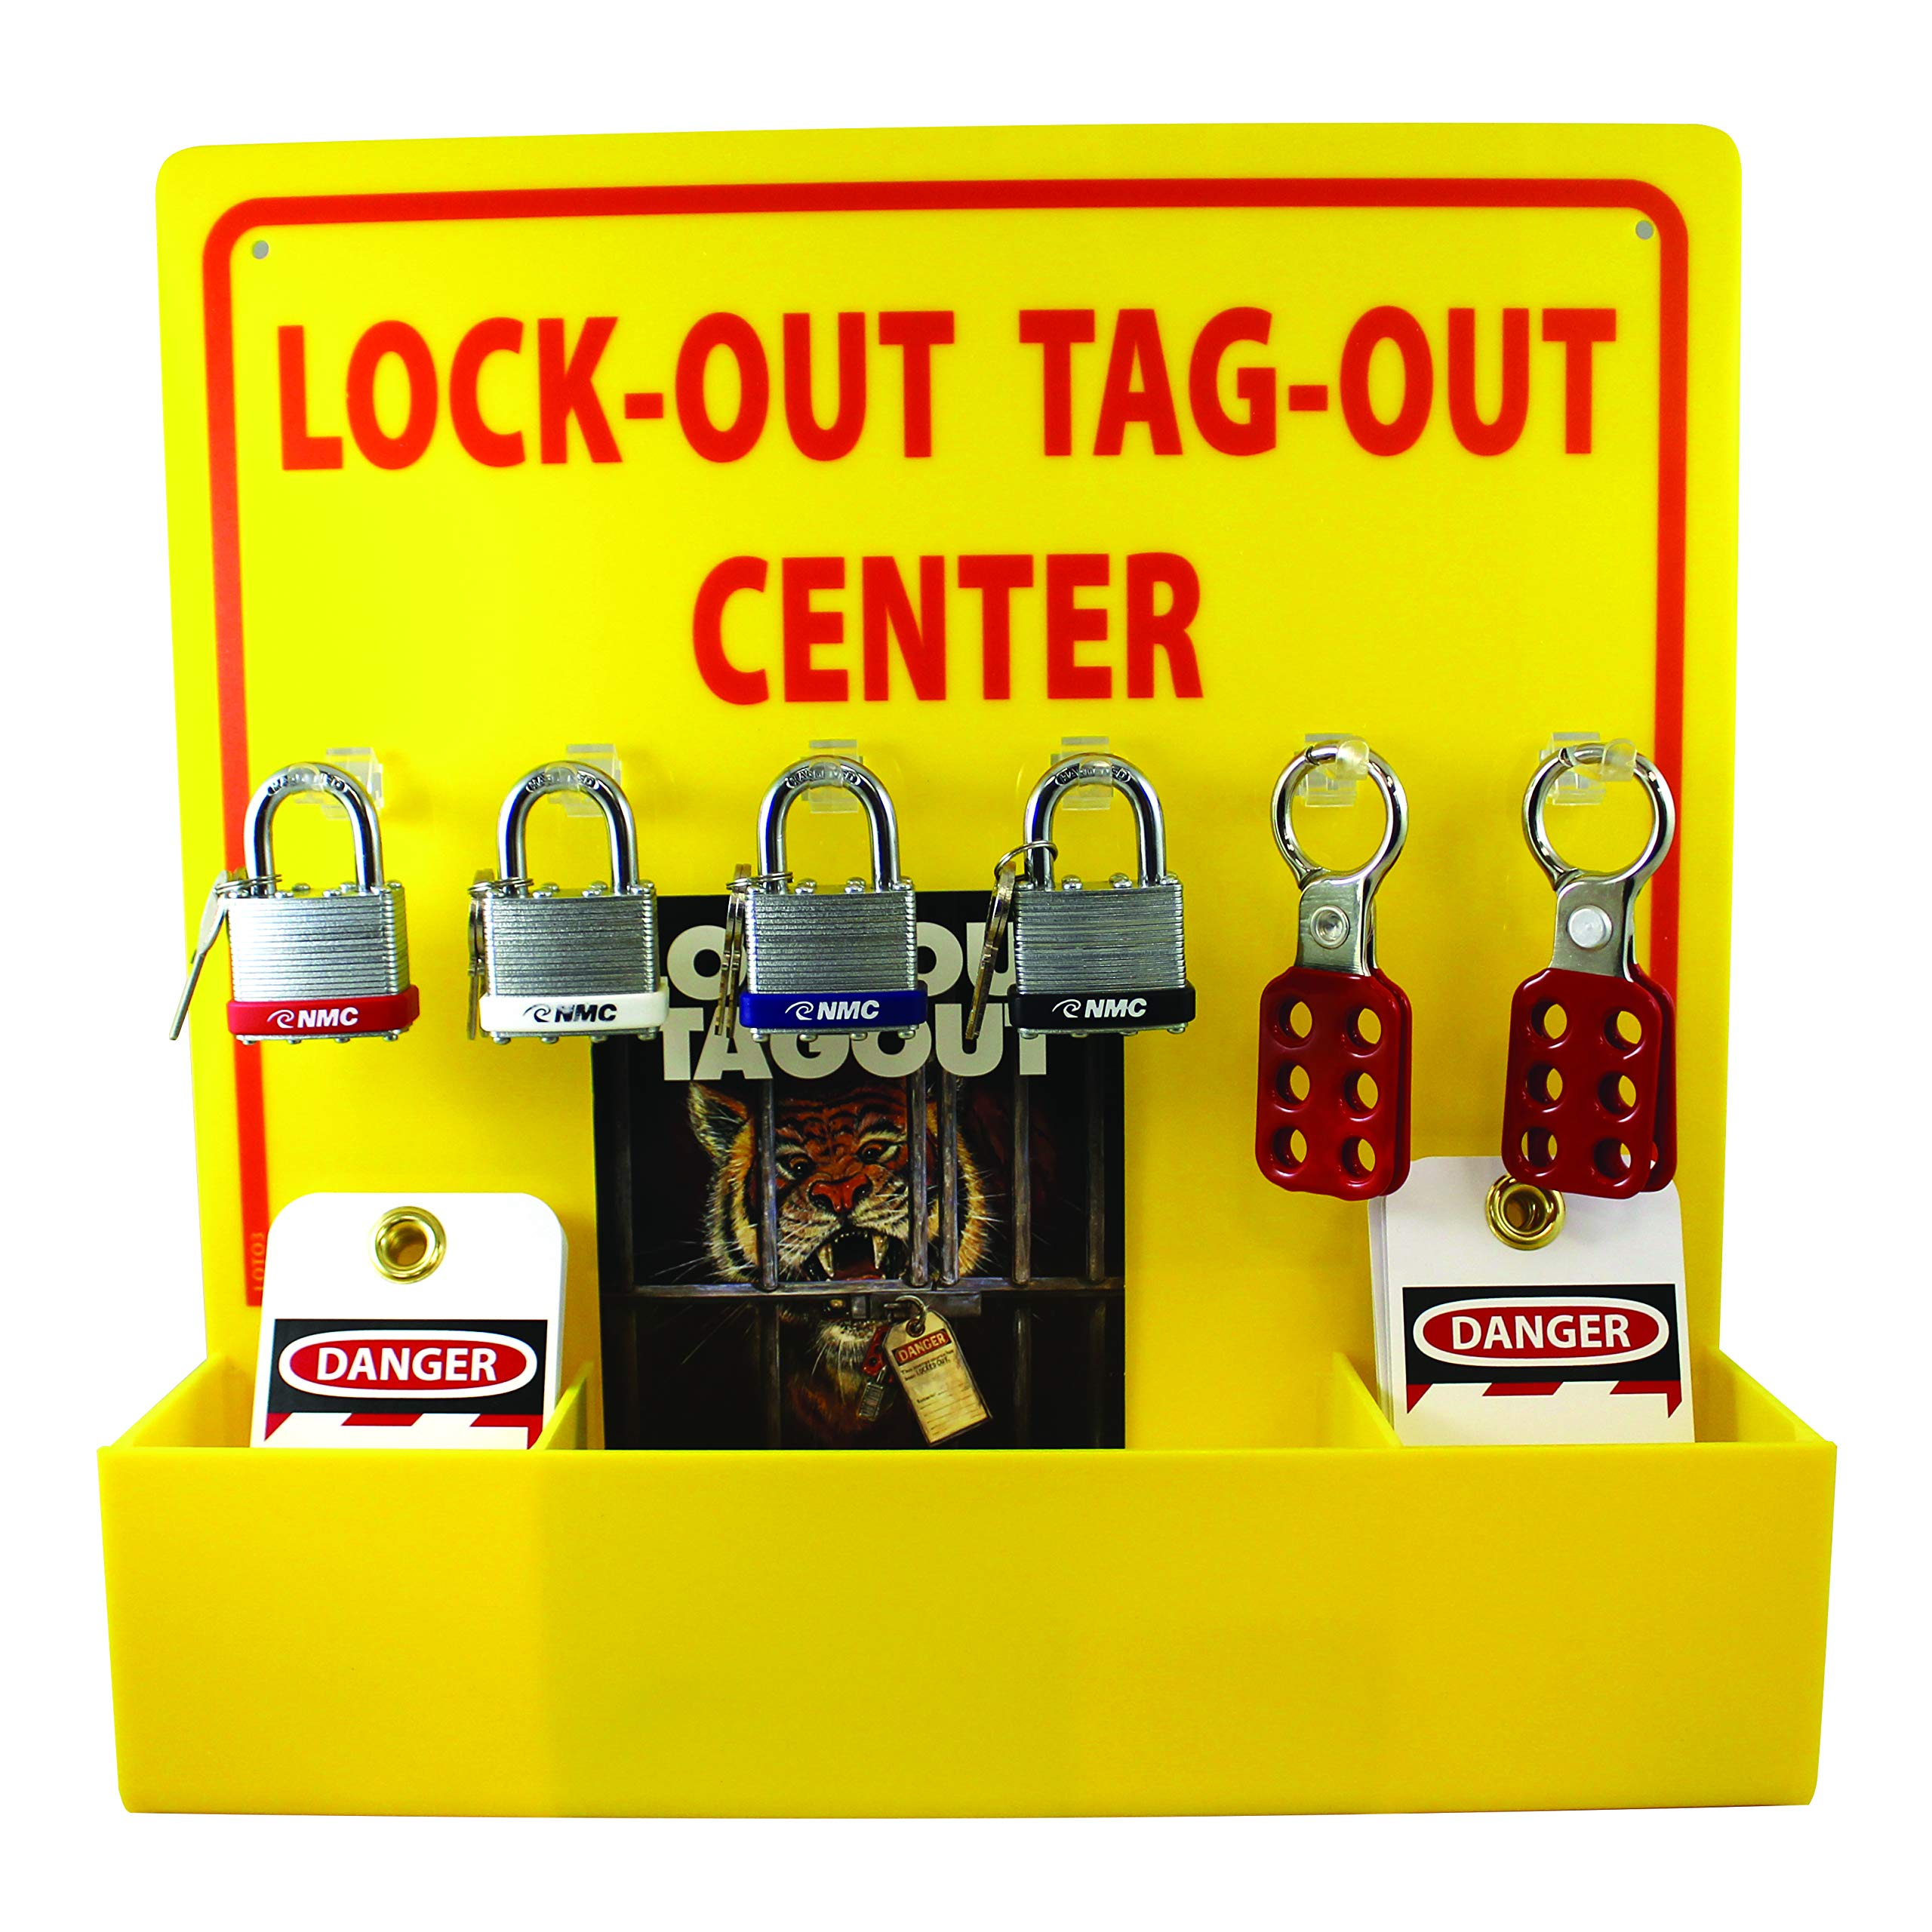 NMC LOTO3 Lock-Out Tag-Out Center Kit with Handbook and 10 Lockout Tags, 16'' Width X 16'' Height, Acrylic, Yellow by NMC